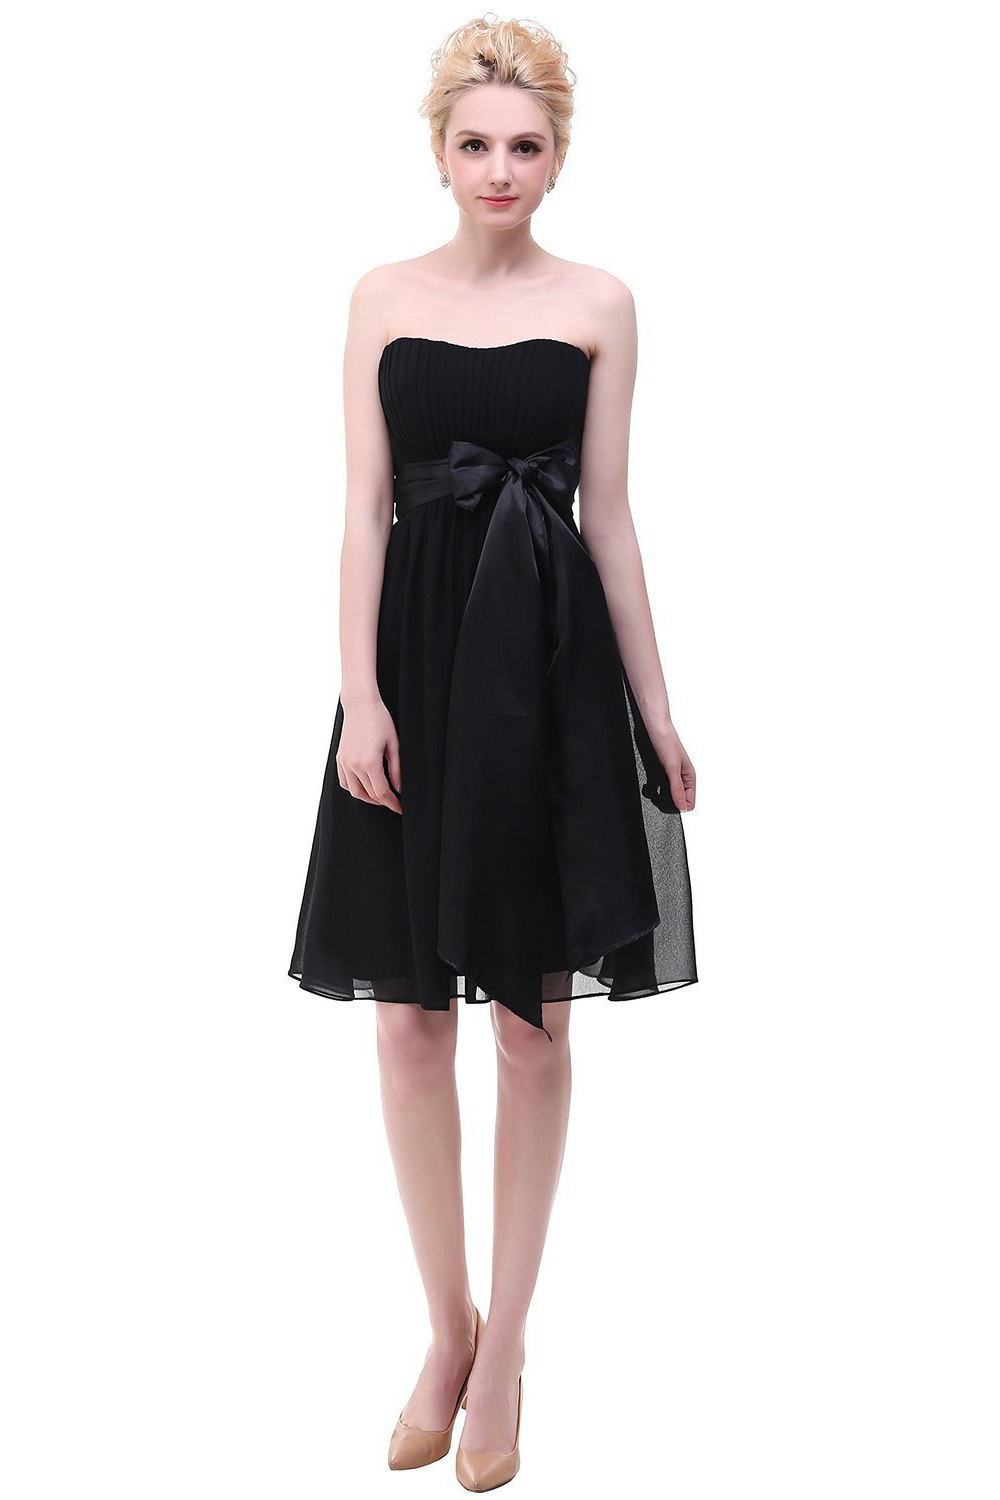 Short Mother and Daughter Clothes Sleeveless Women Evening Dresses For Party and Evening Gowns A-Line Prom Dresses For Women